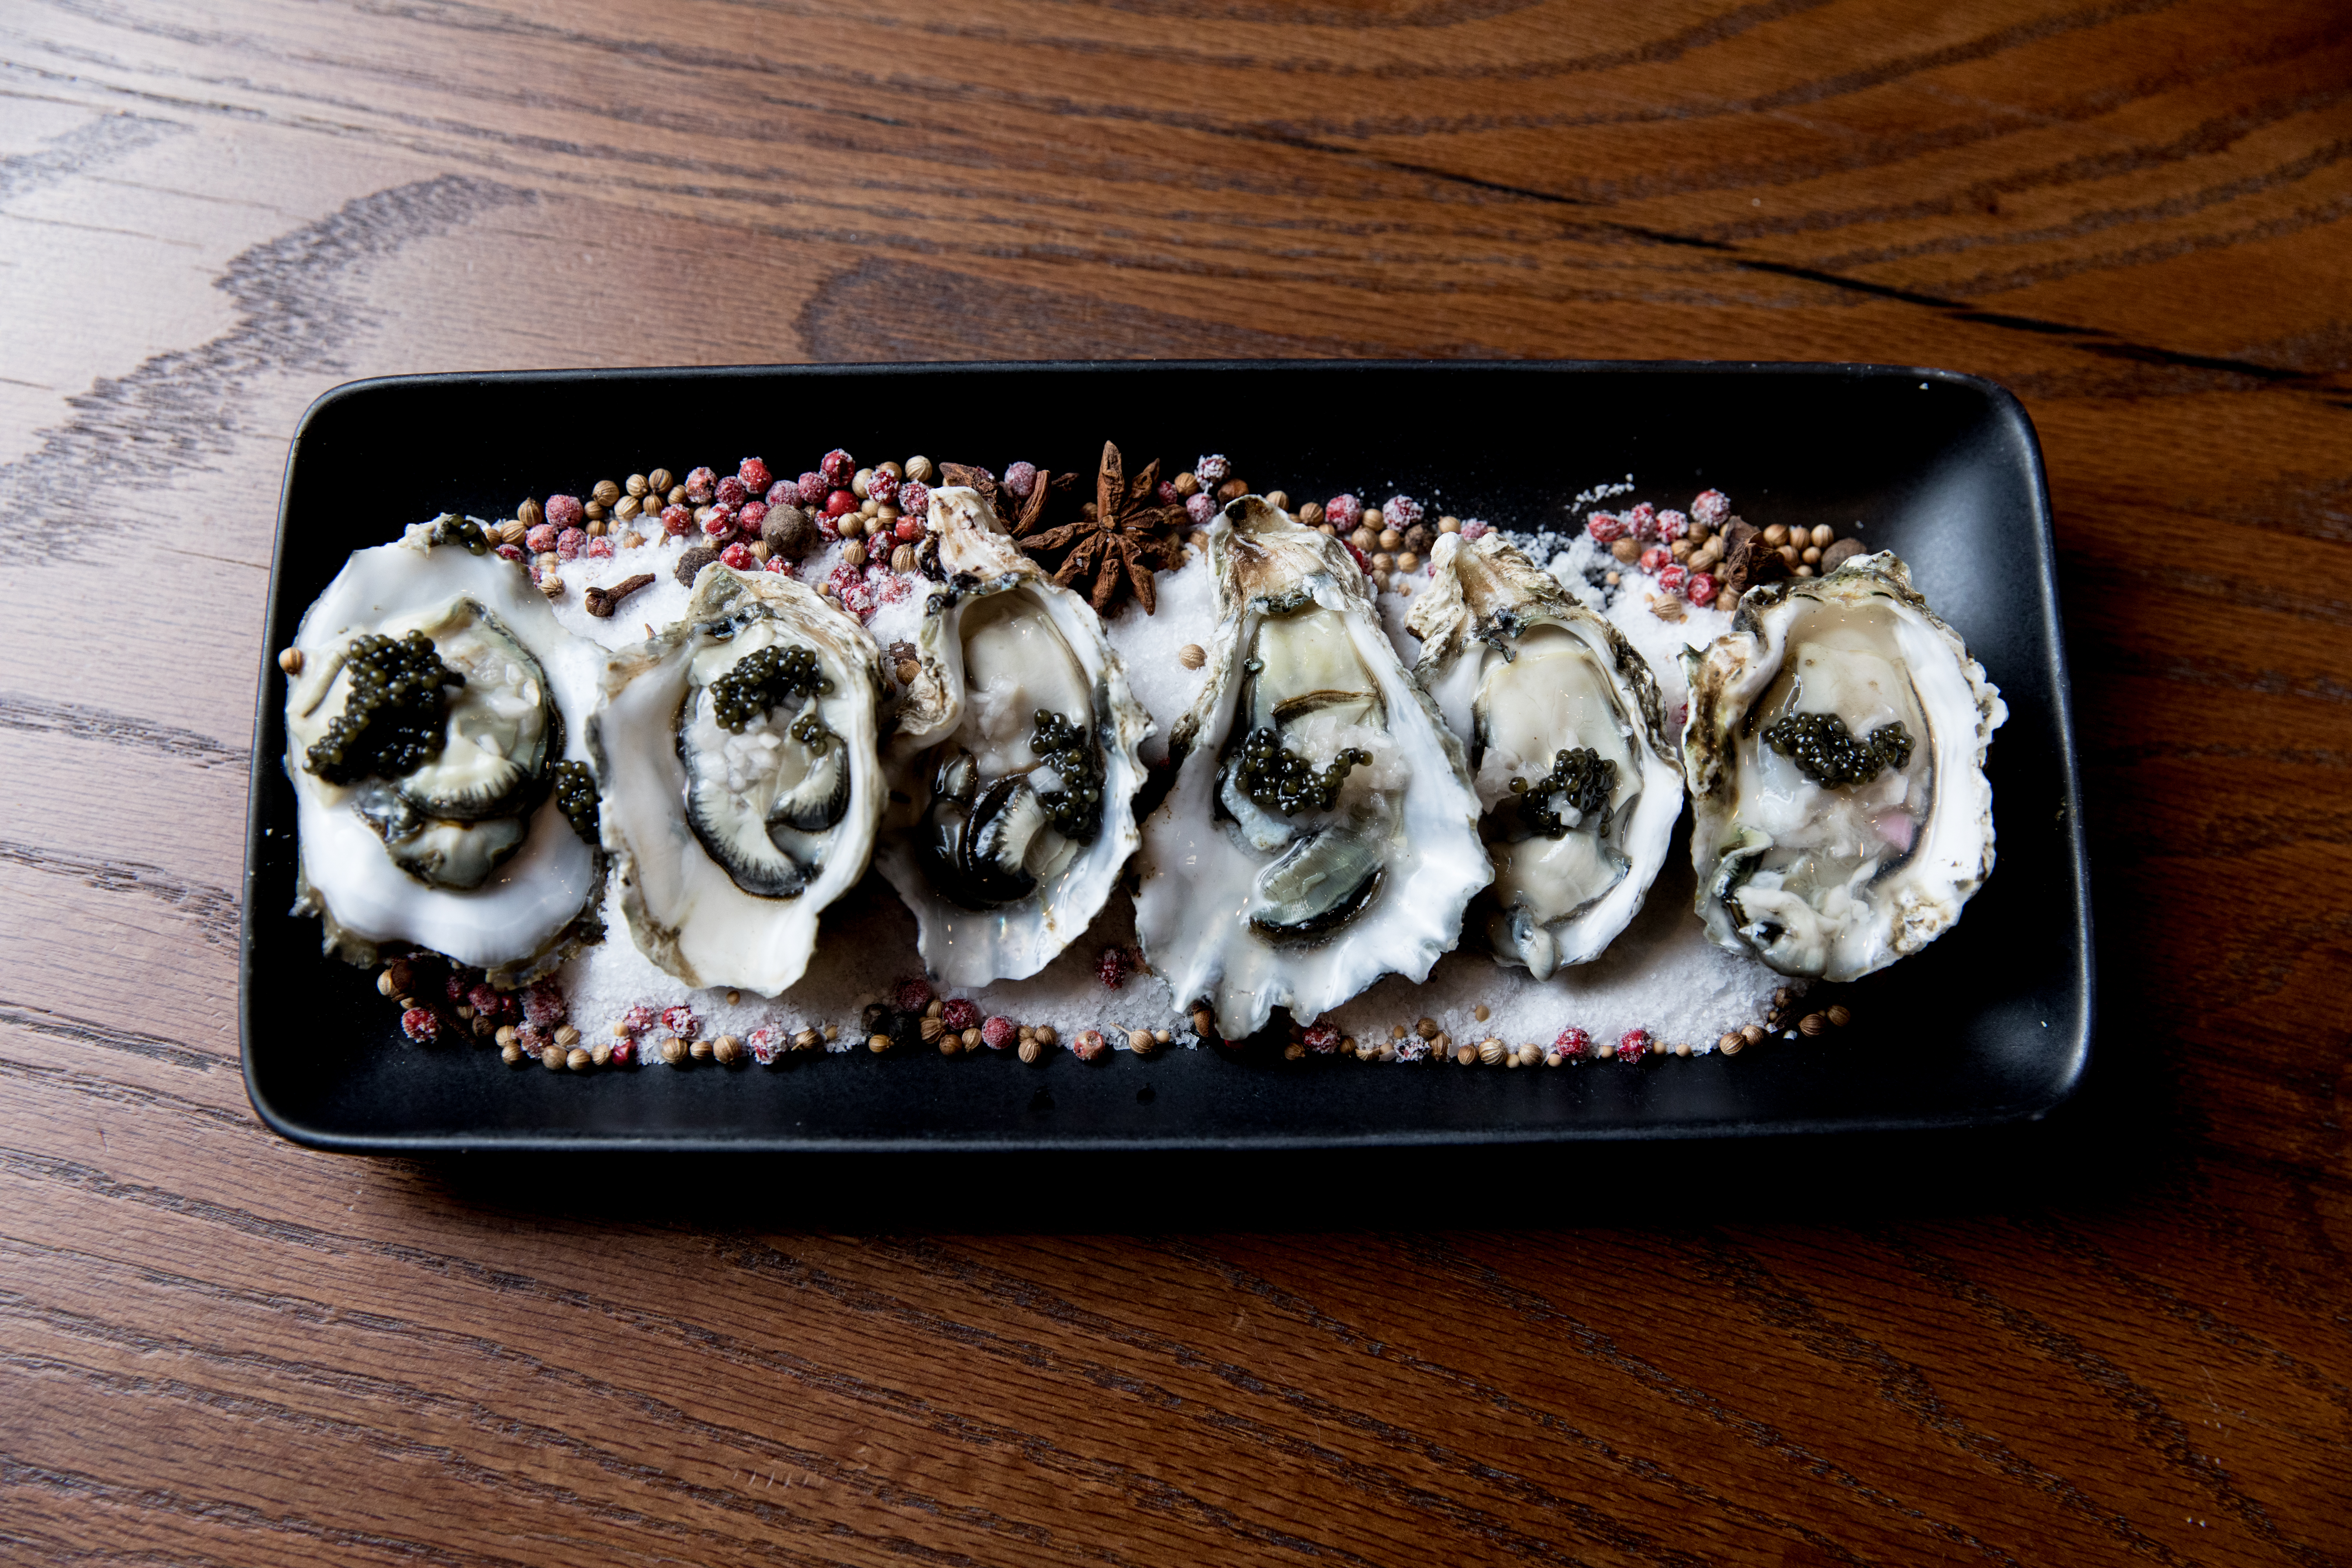 A black serving platter displays a row of six oysters with champagne mignonette